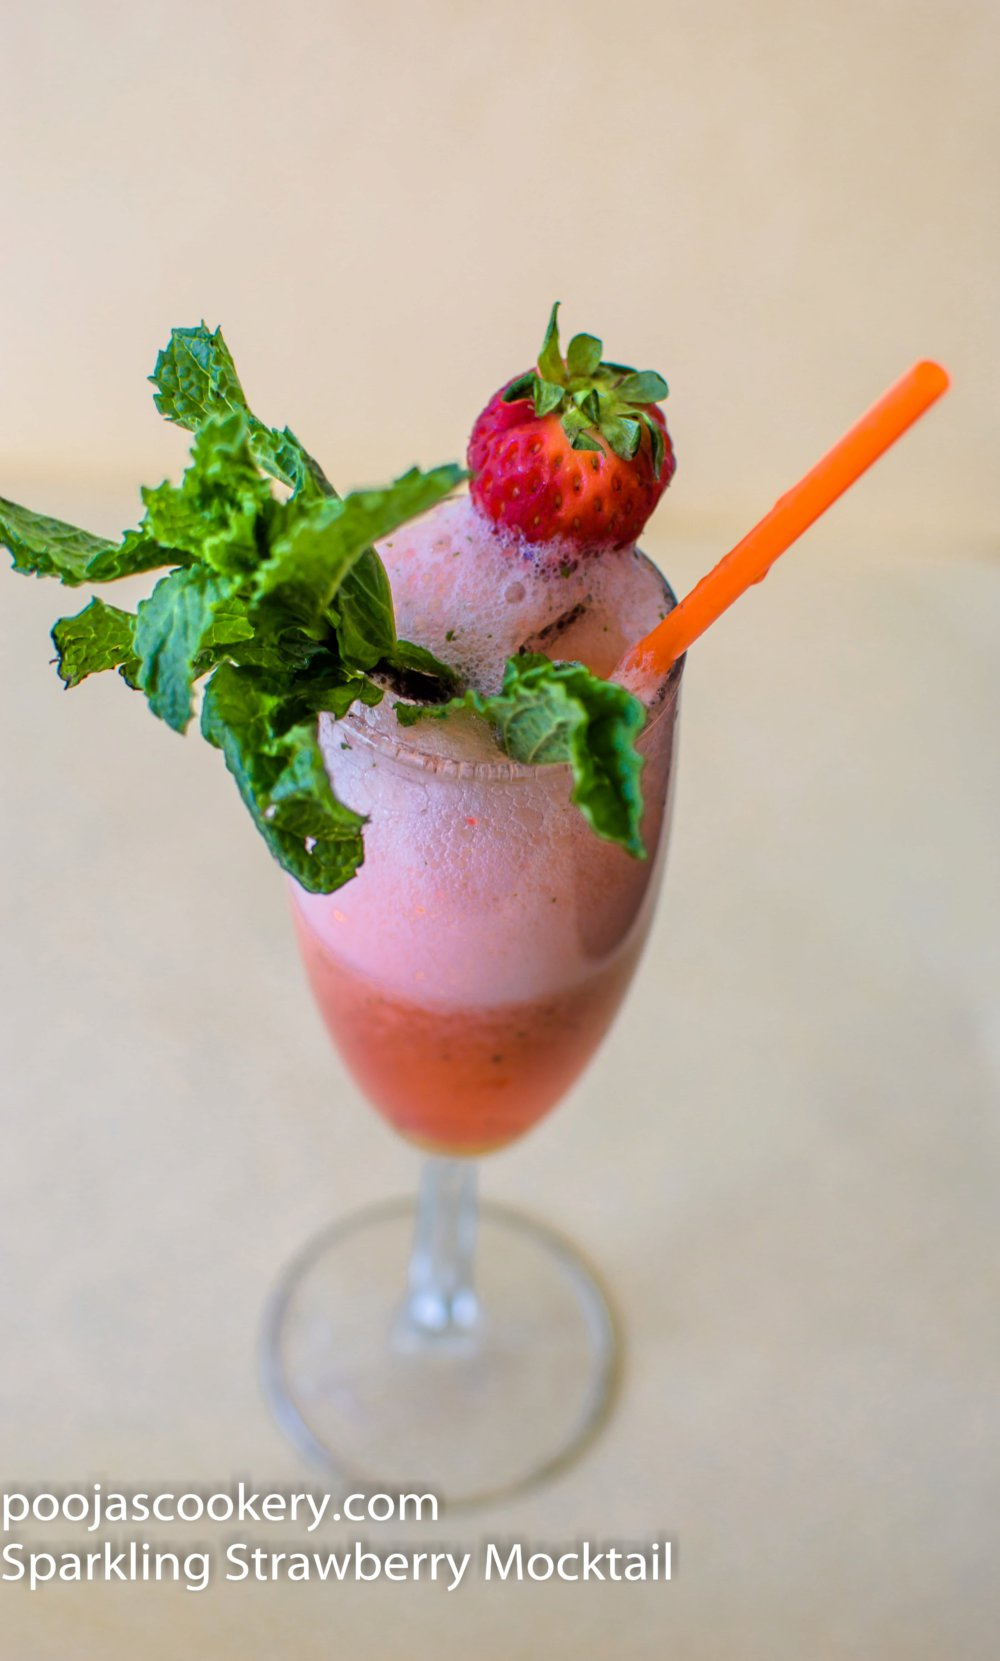 Sparkling Strawberry Mocktail